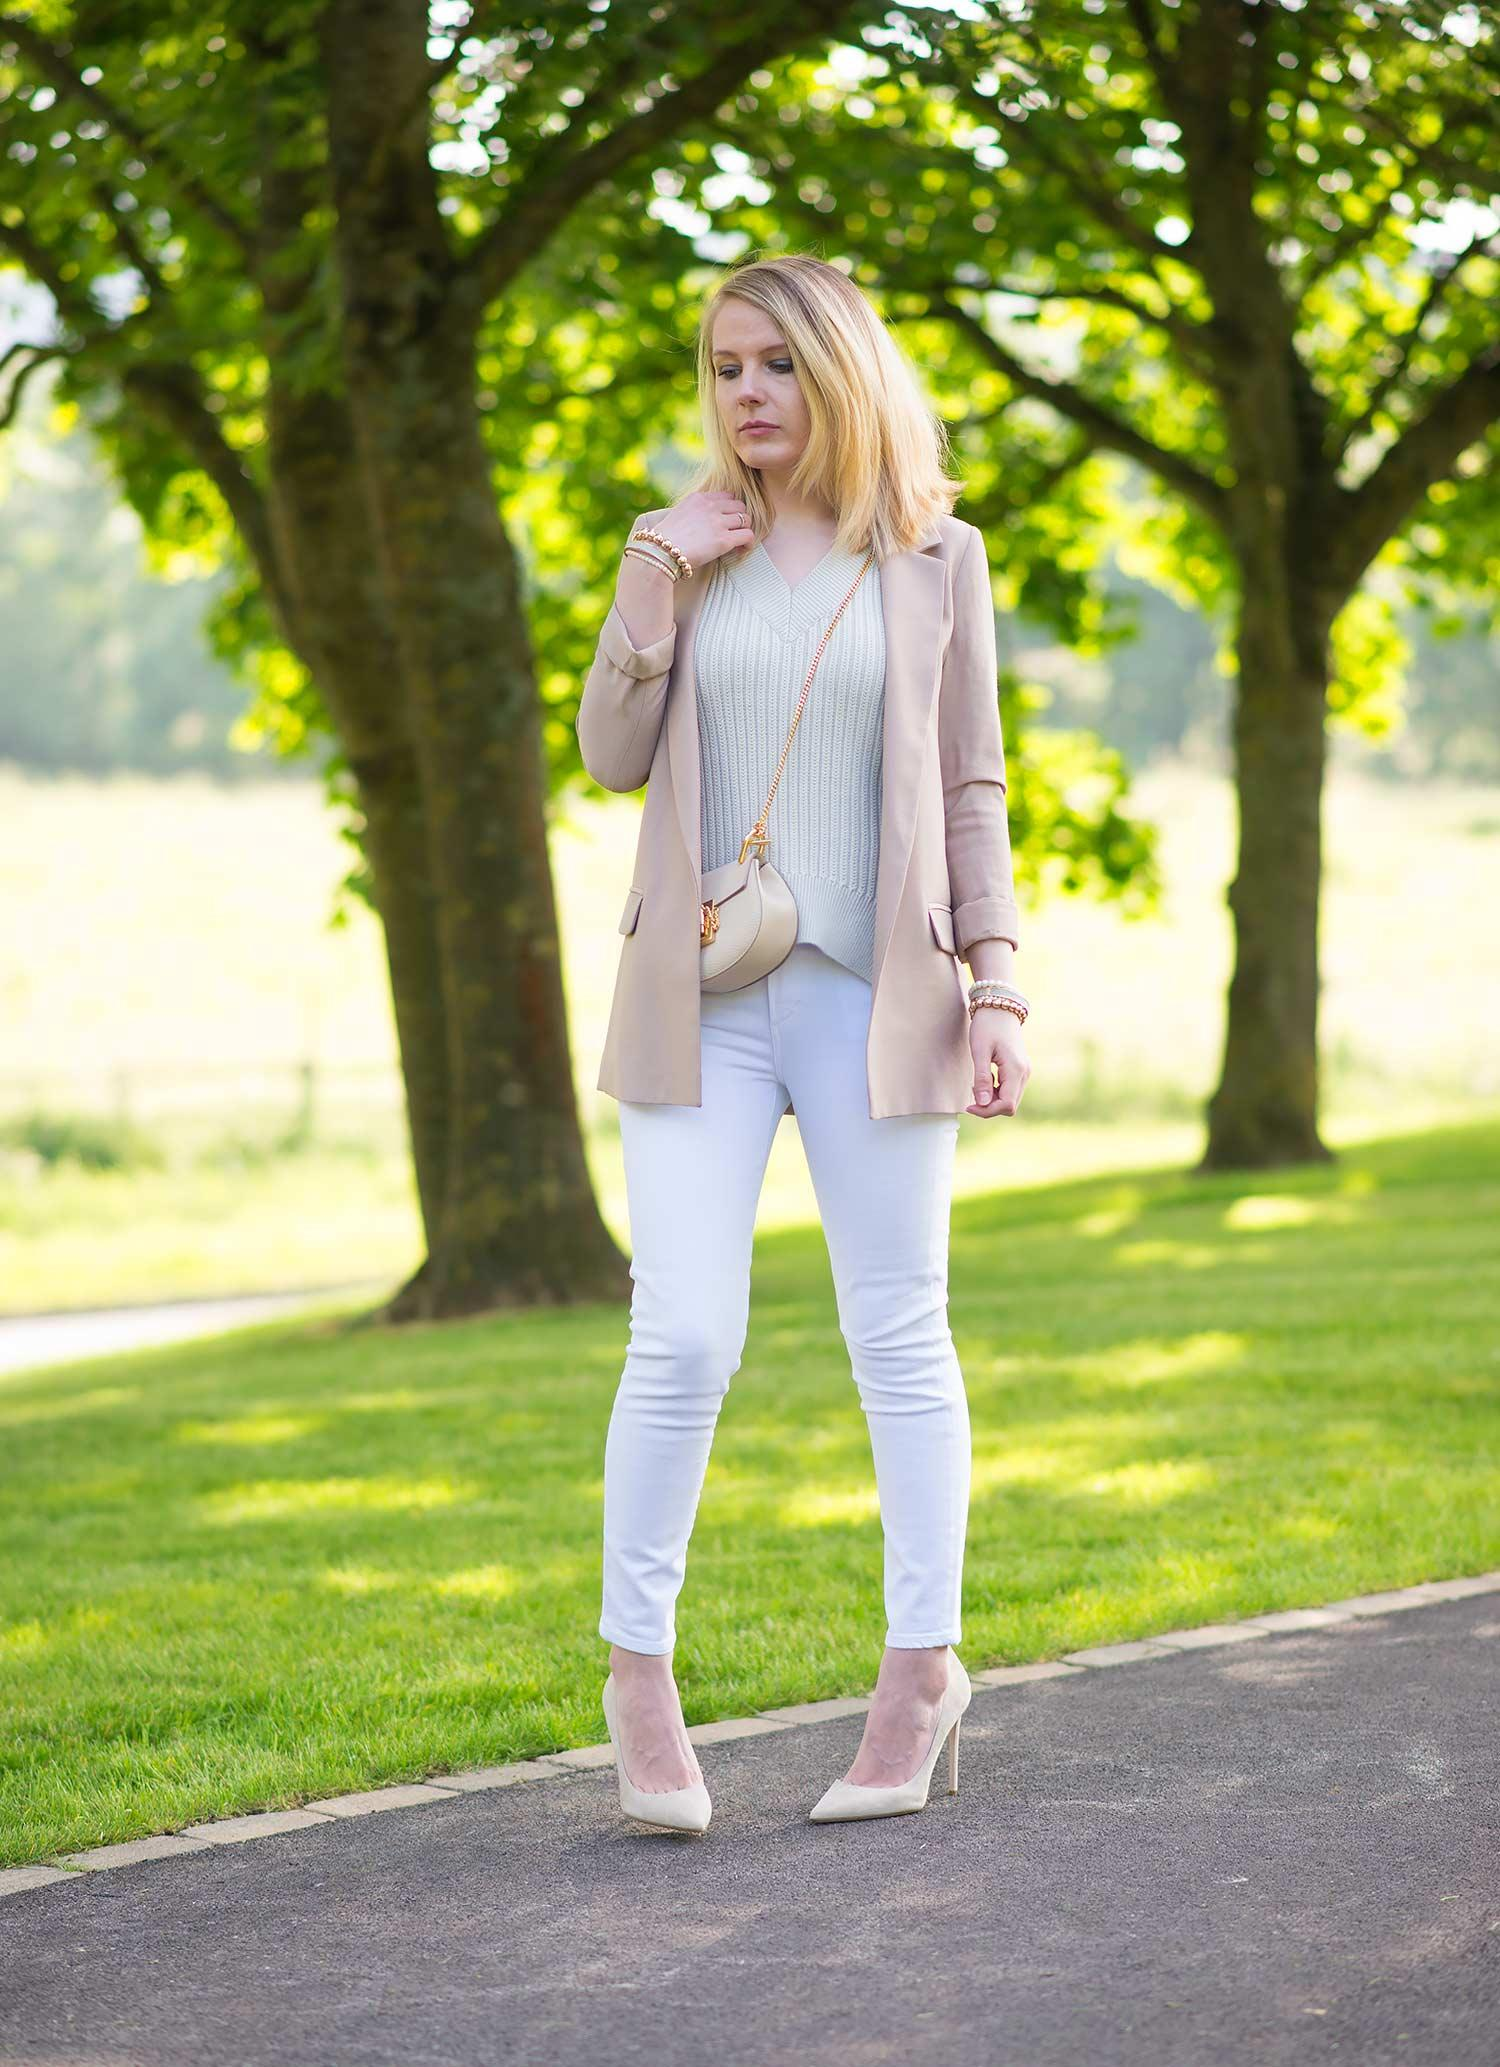 lorna burford uk fashion blog model